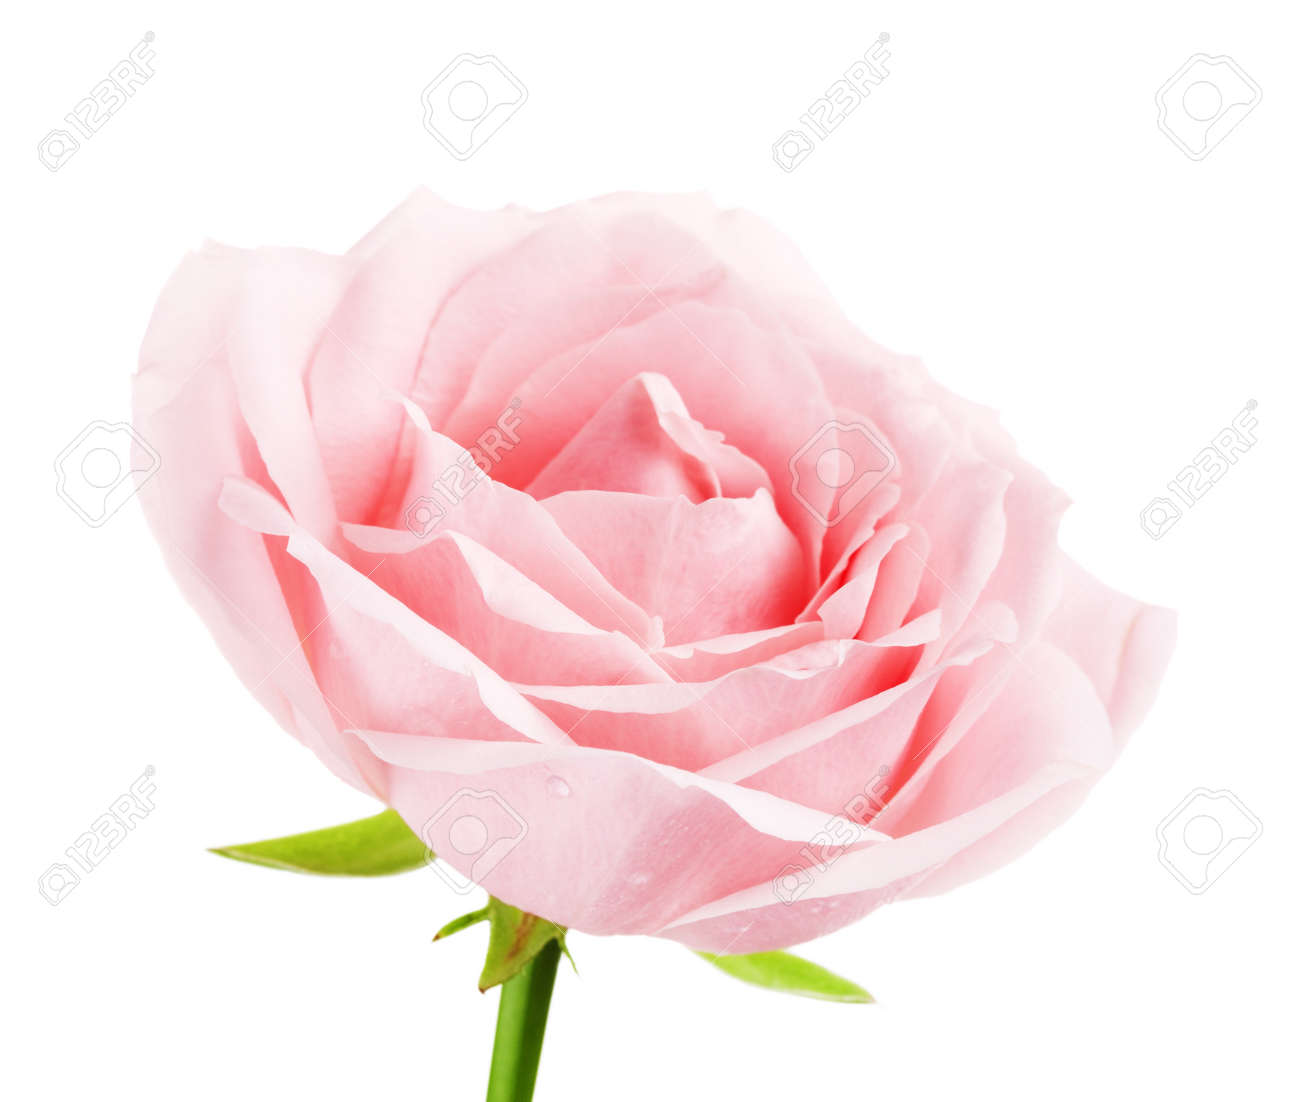 Single pink rose flower isolated on white background stock photo single pink rose flower isolated on white background stock photo 60260635 mightylinksfo